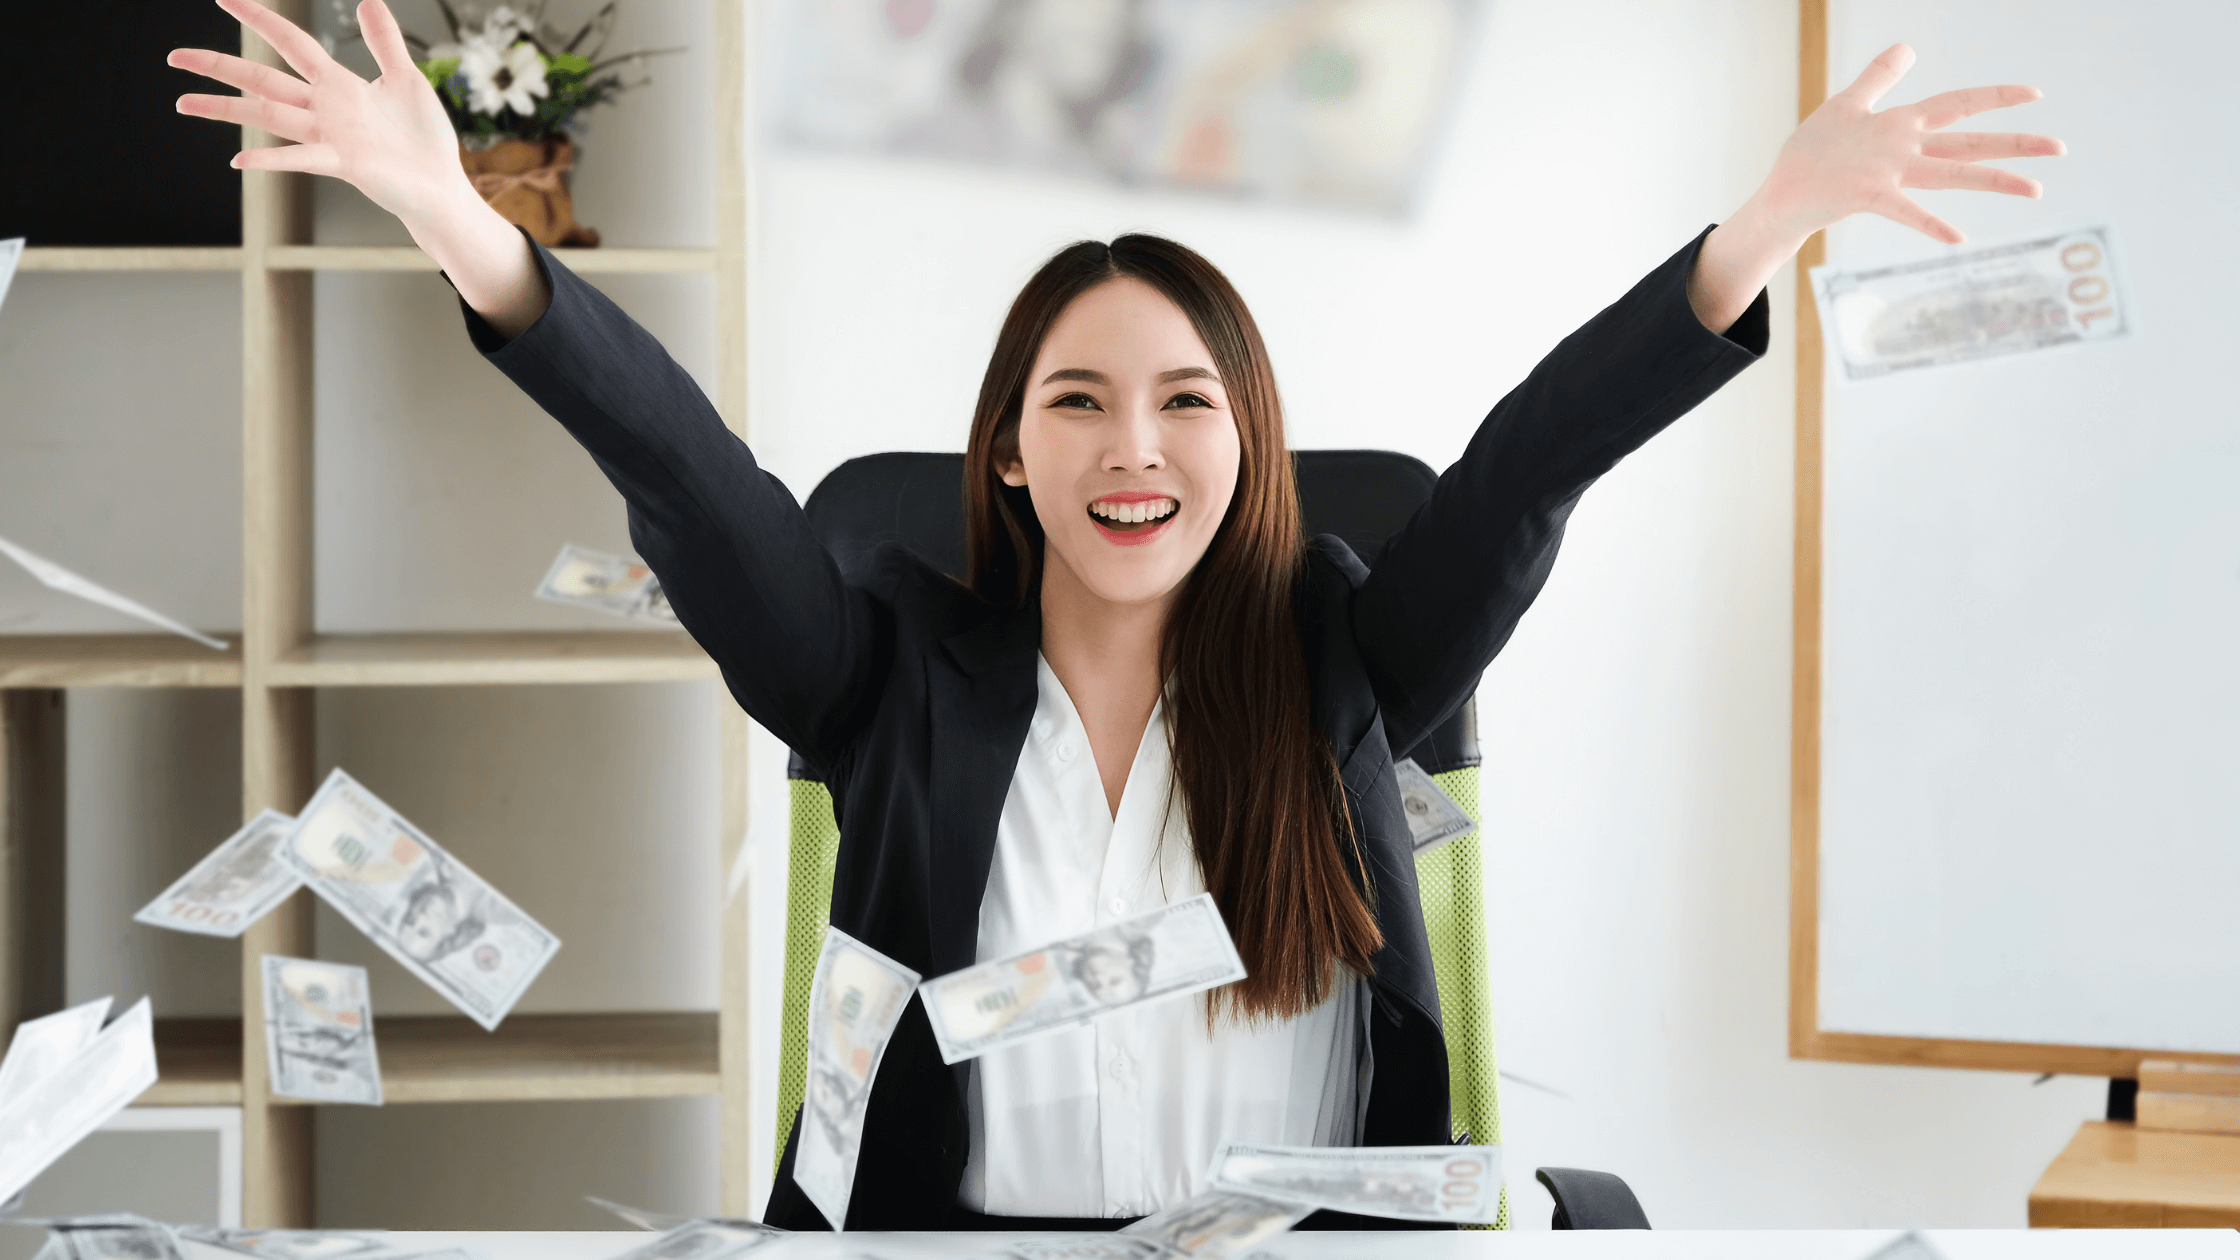 lady with arms raised-finding financial freedom